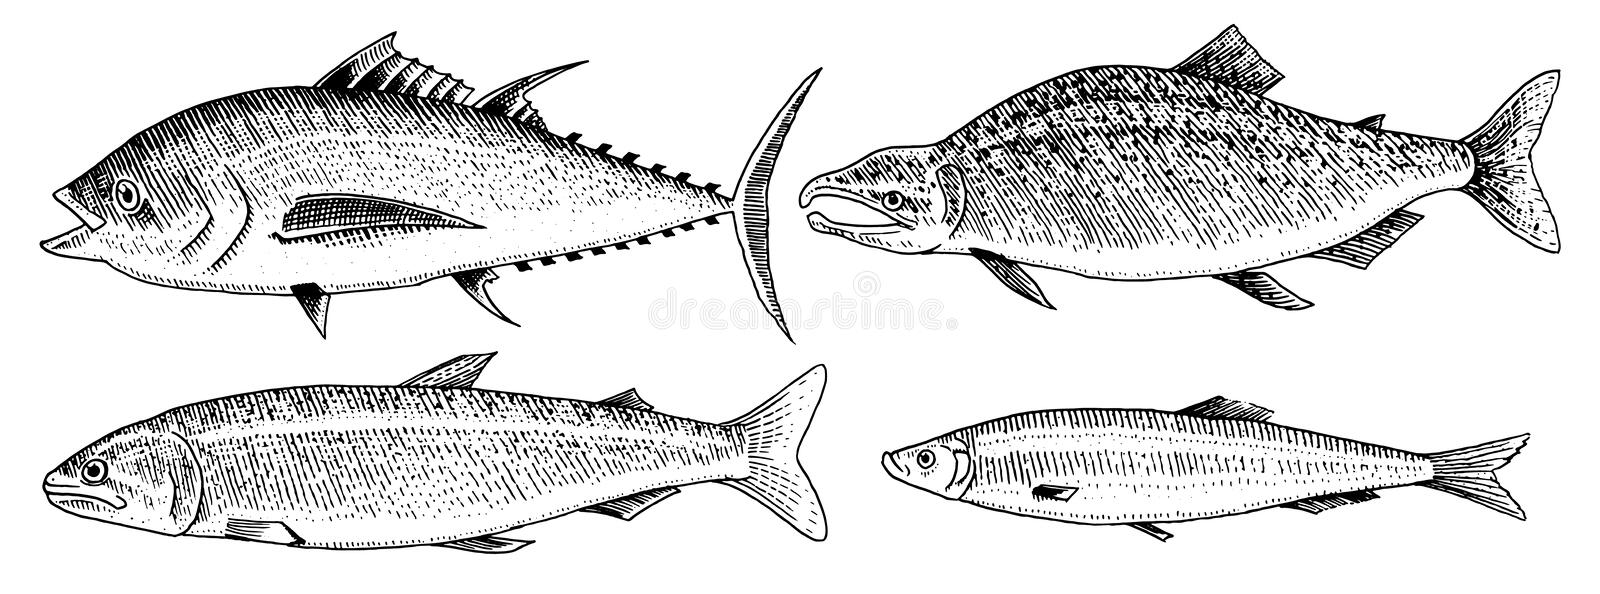 River and lake fish. Salmon and rainbow trout, tuna and herring, seawater and freshwater carp. freshwater aquarium. Seafood for the menu Engraved hand drawn in vector illustration